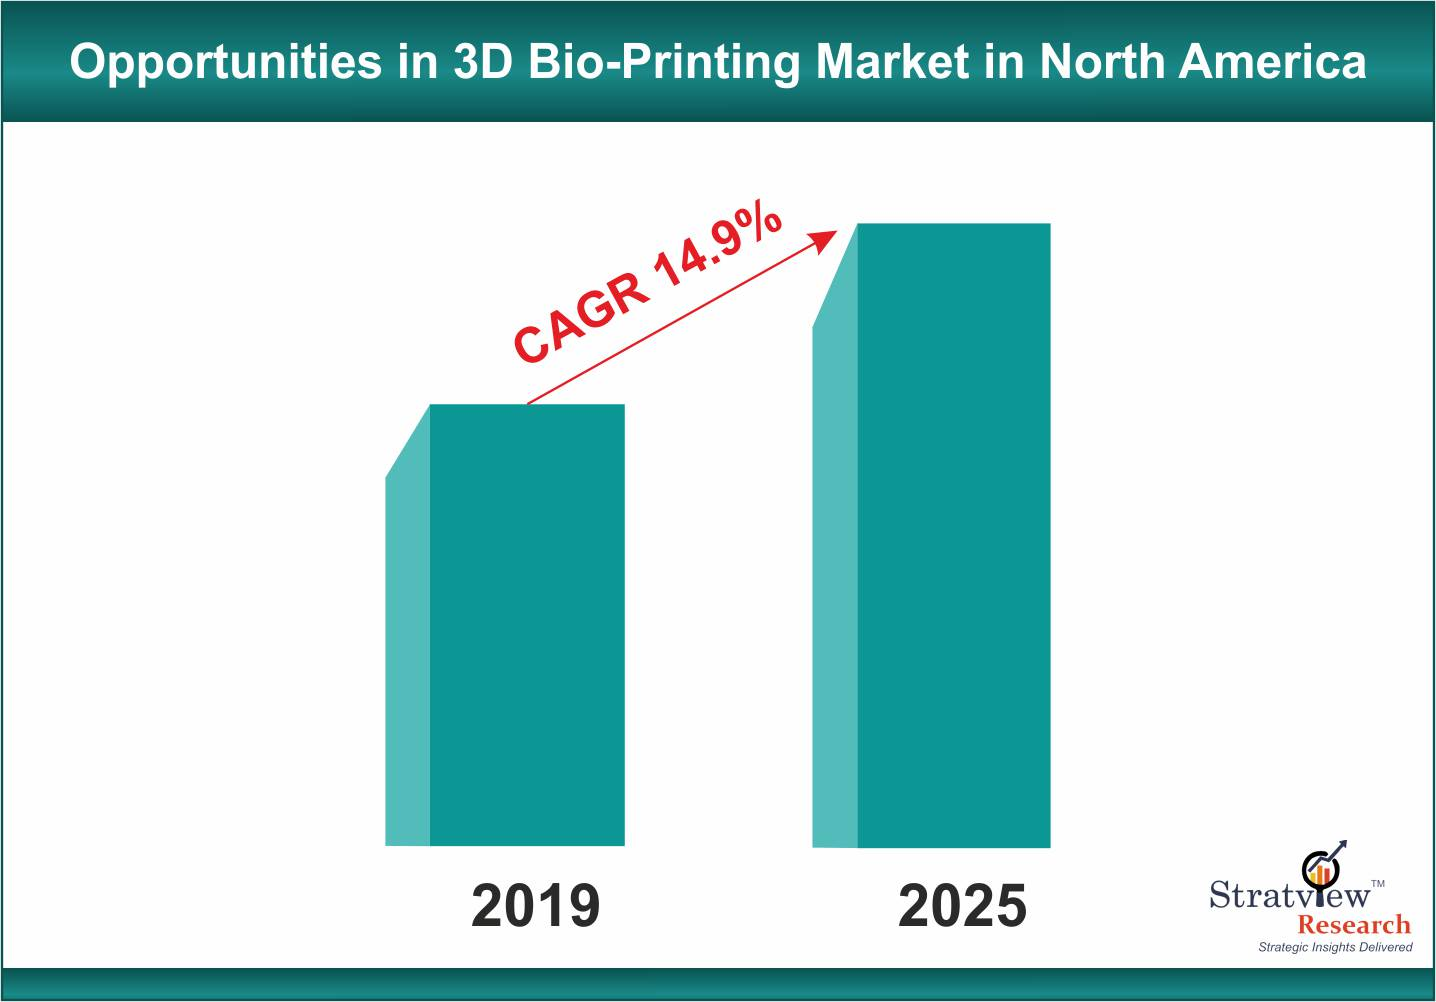 Exploring the Opportunities in 3D Bio-Printing Market in North America